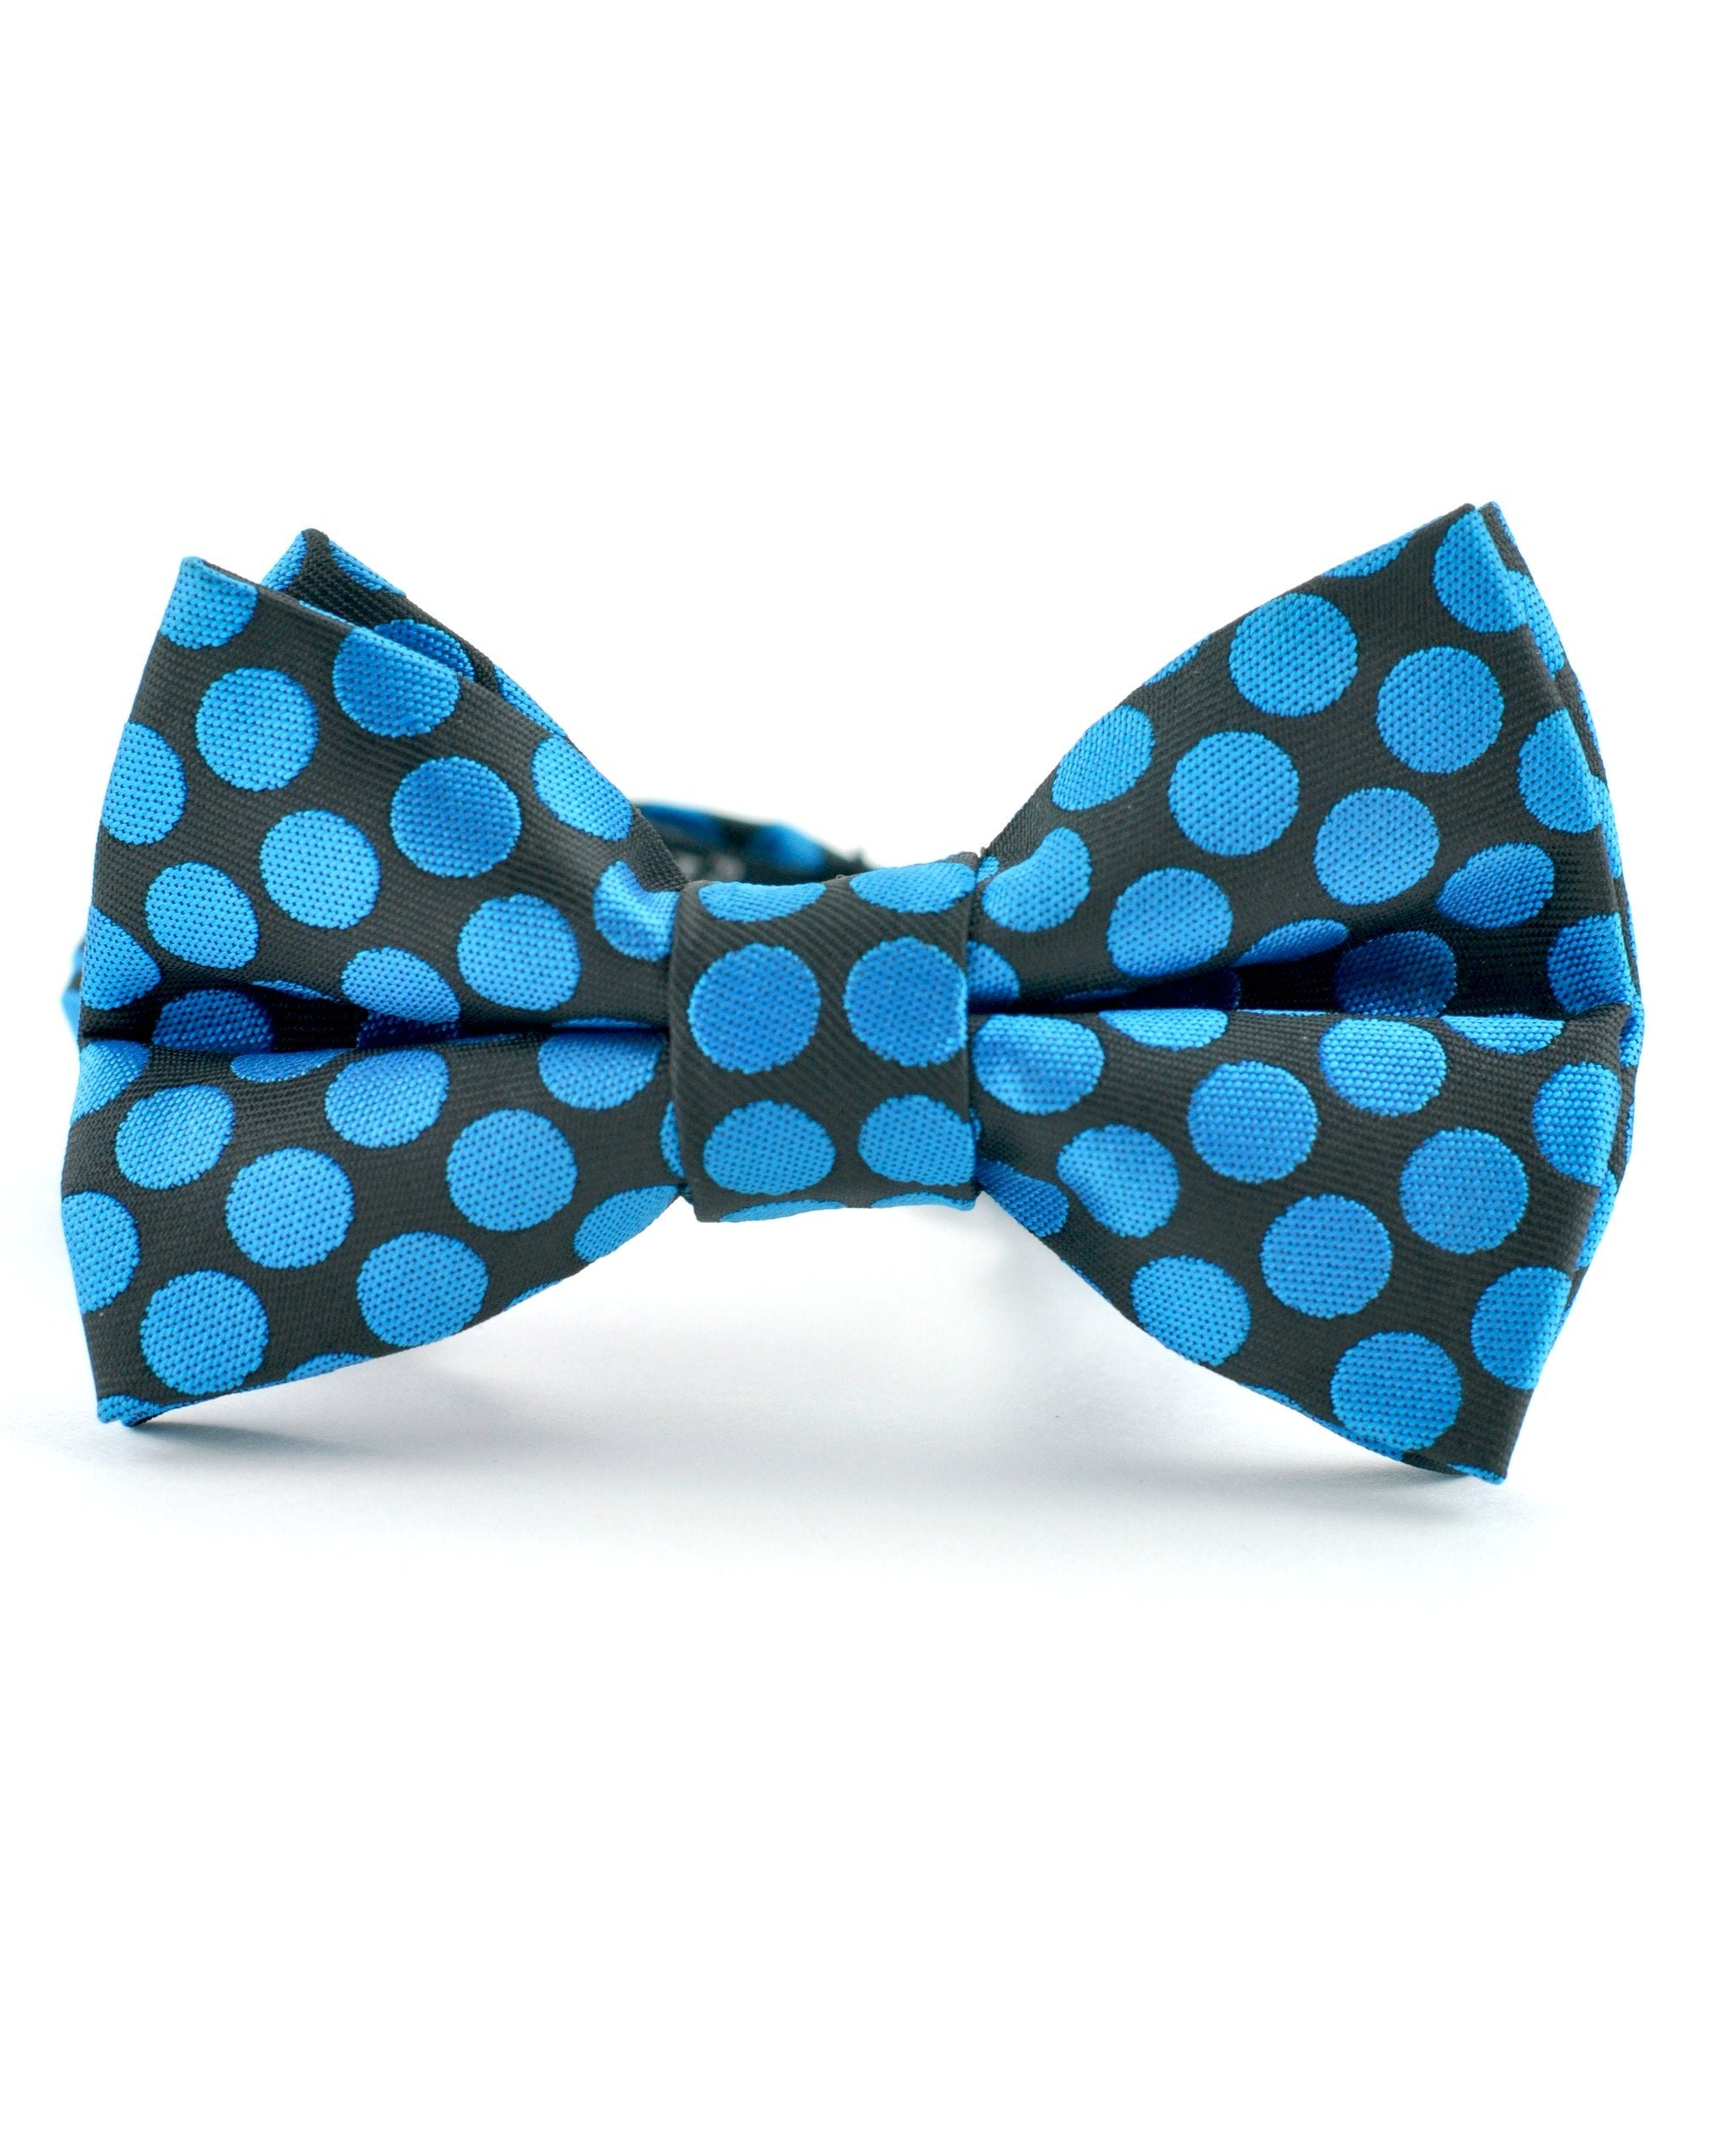 onyx-and-azure-dots-bow-tie.jpg